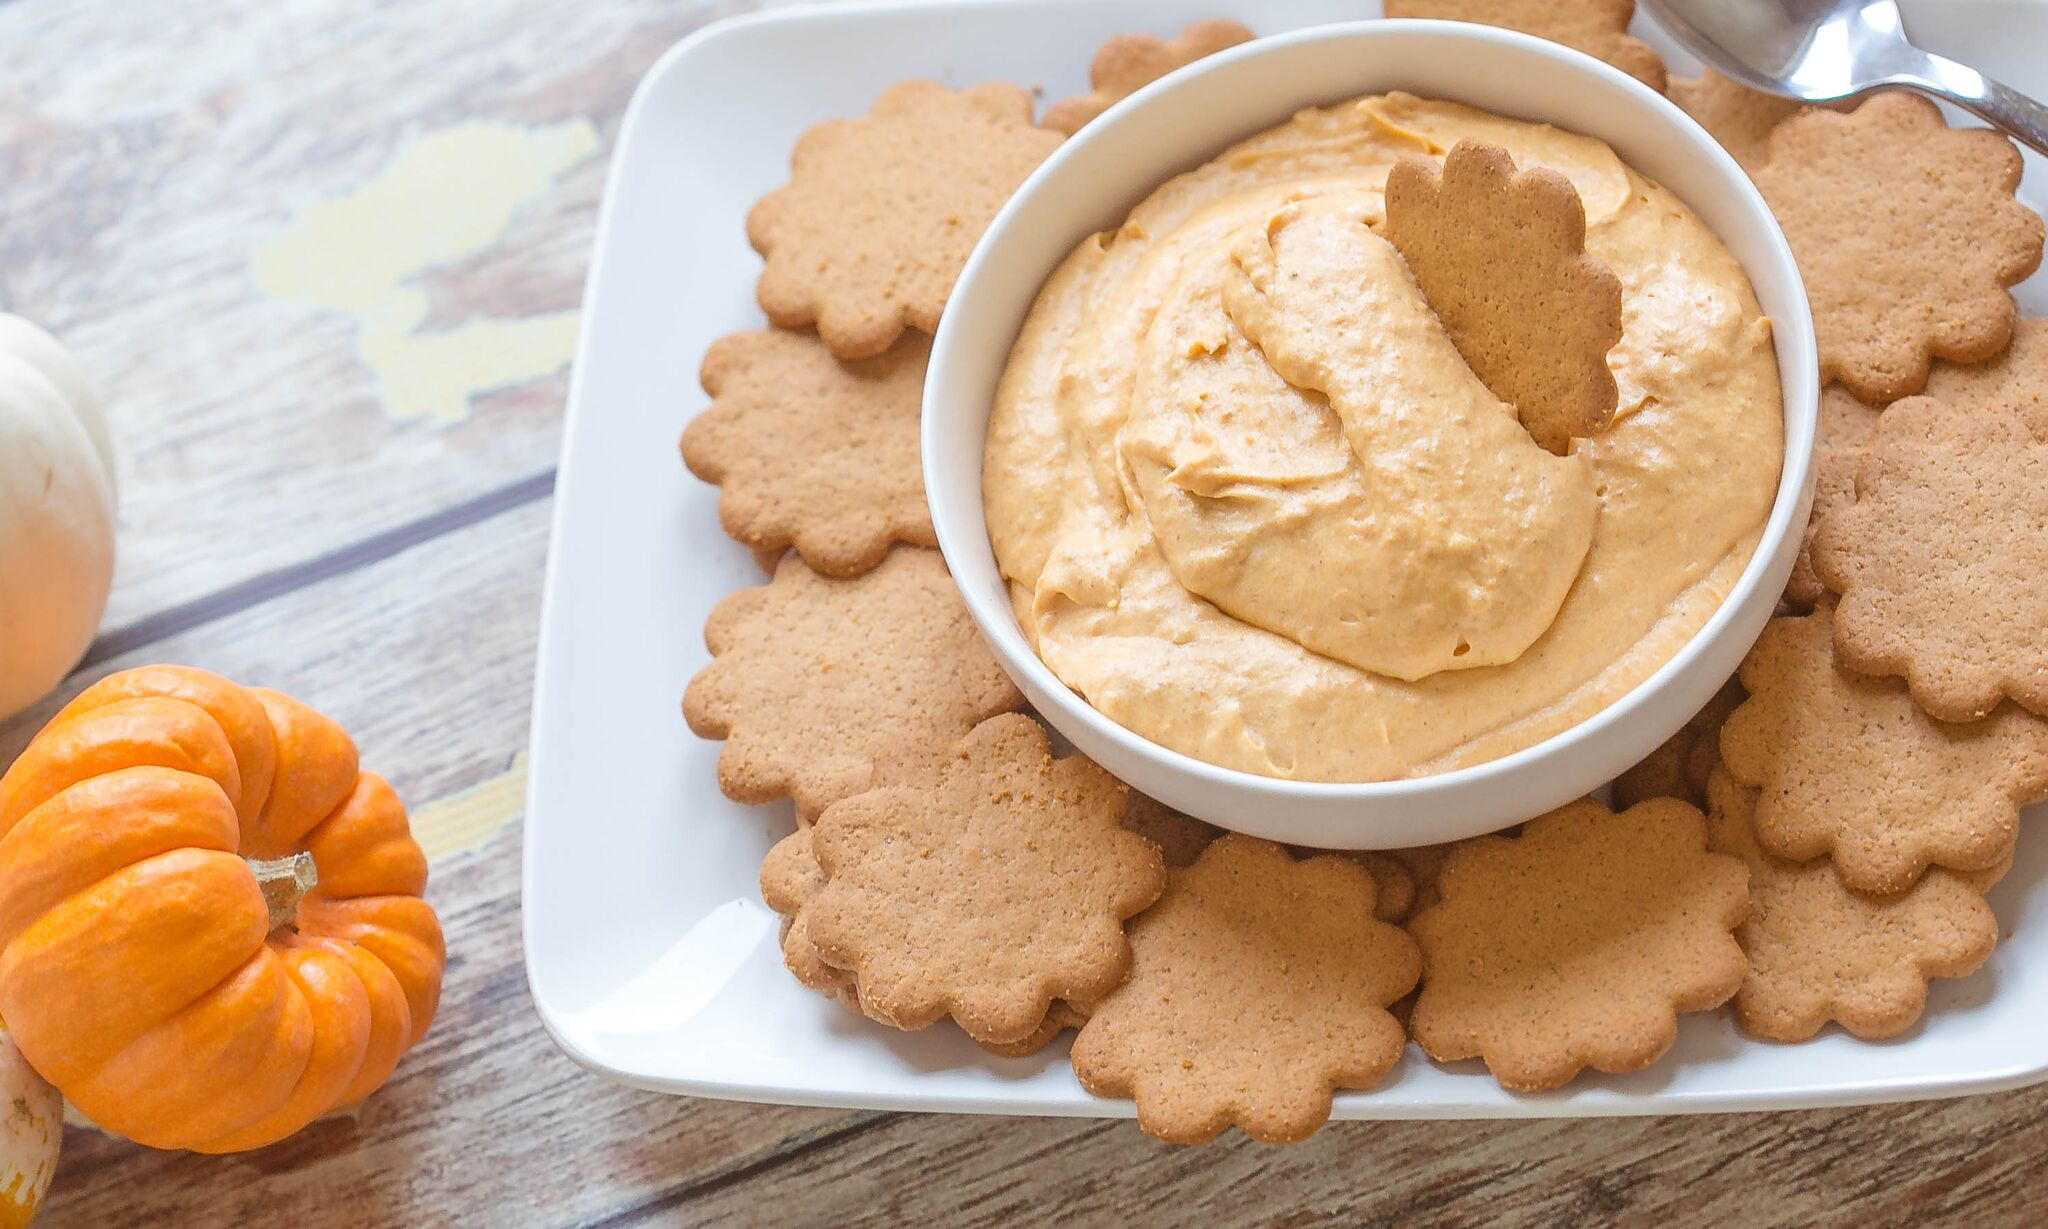 Serve chilled pumpkin dip with your favorite cookie.